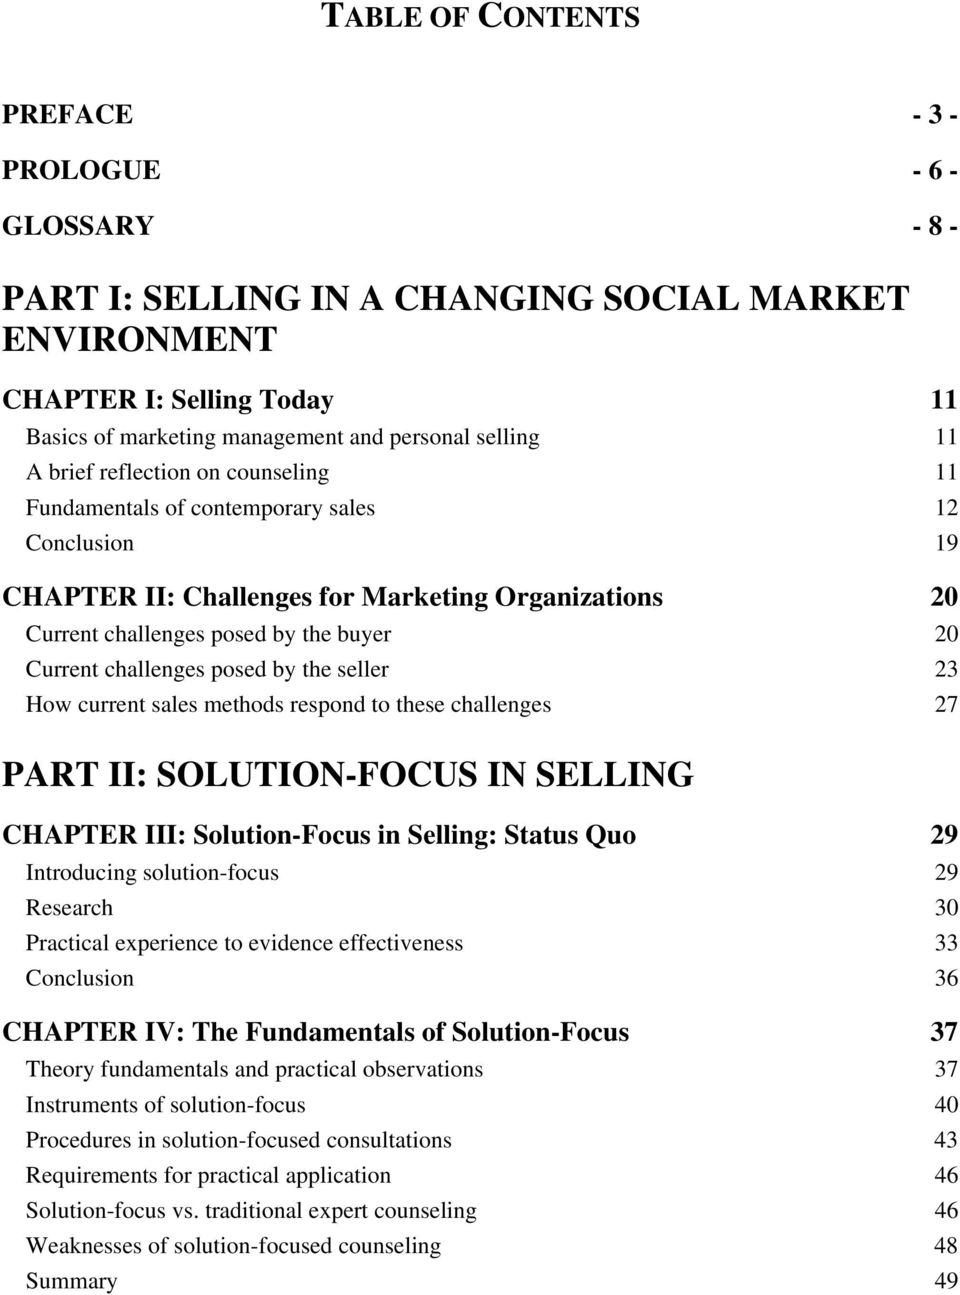 challenges posed by the seller 23 How current sales methods respond to these challenges 27 PART II: SOLUTION-FOCUS IN SELLING CHAPTER III: Solution-Focus in Selling: Status Quo 29 Introducing